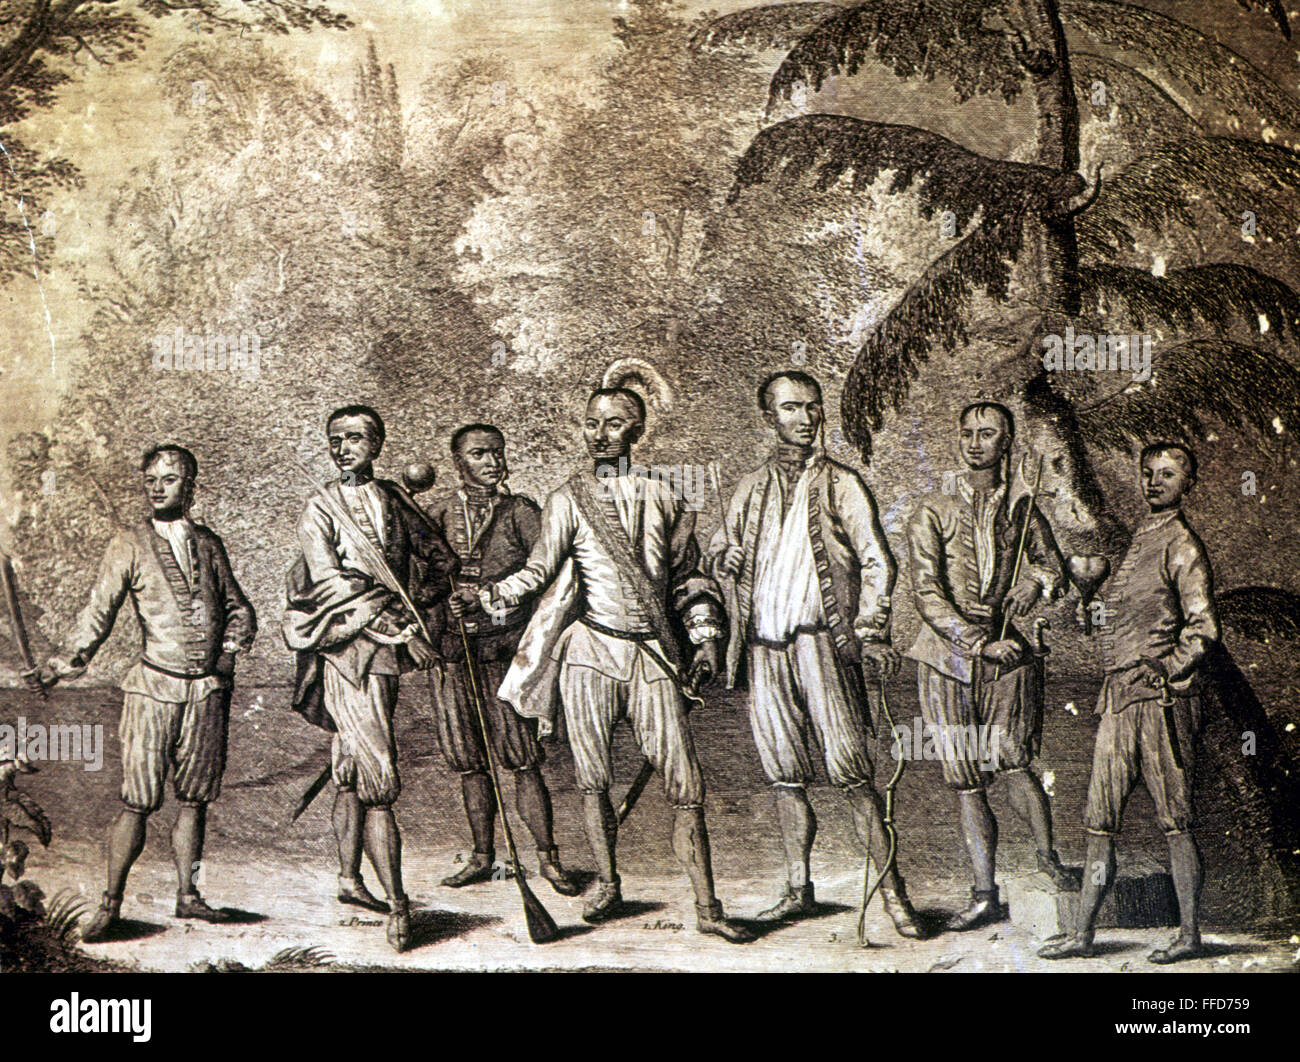 cherokee assimilation Free essay: native americans have had a long history of resistance to the social and cultural assimilation into white culture by employing various creative.